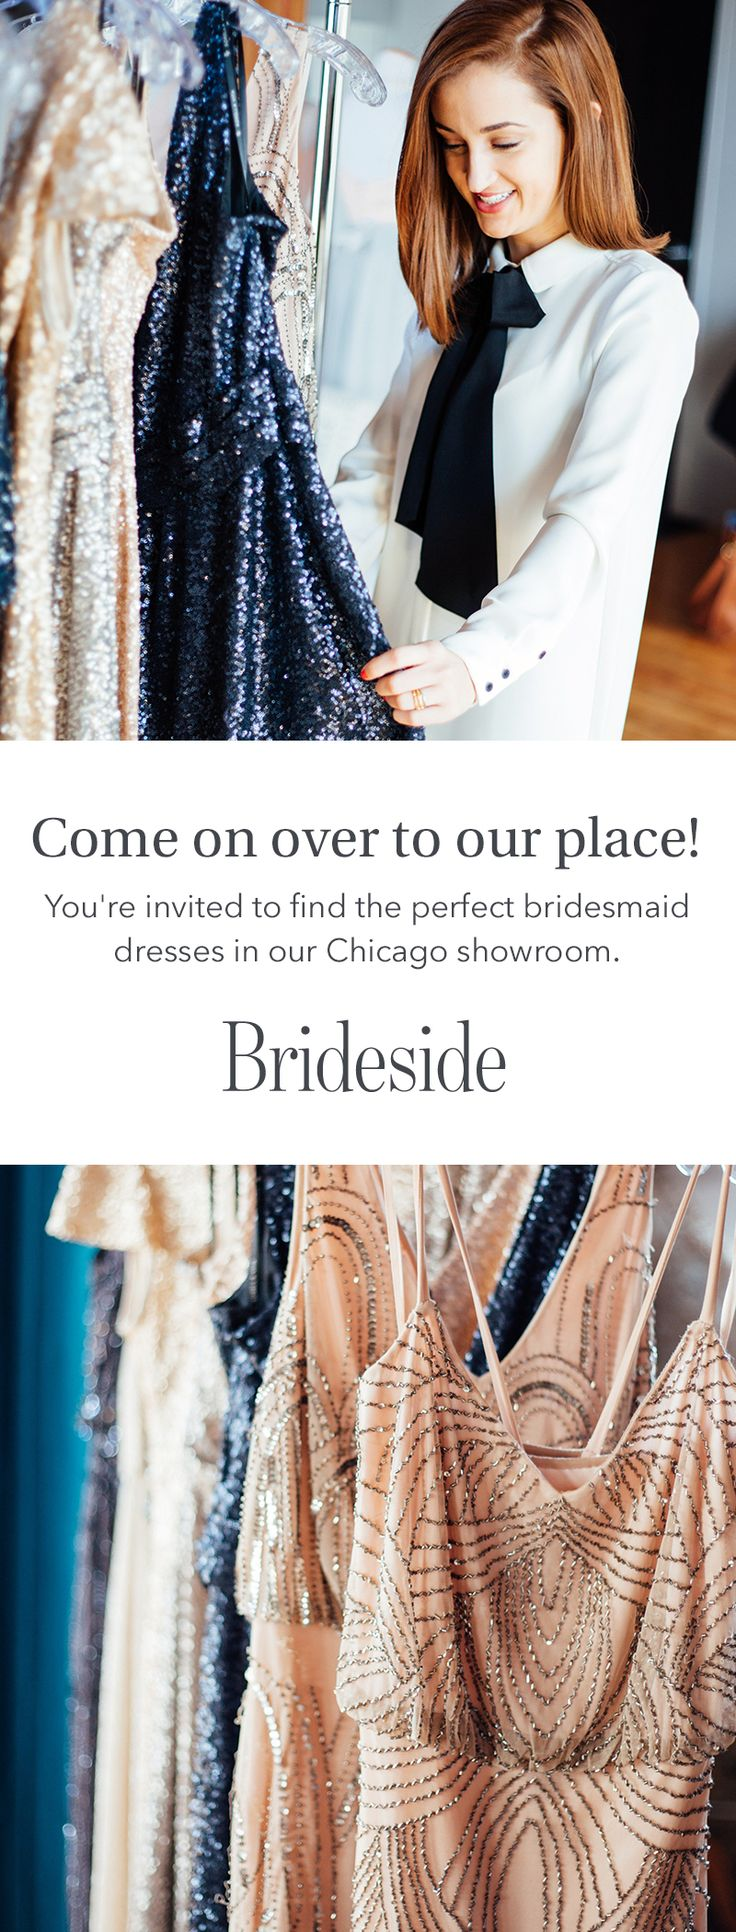 Let's get this (bridal) party started.     https://brideside.com/?utm_campaign=accessories&utm_source=pinterest&utm_medium=11.3p